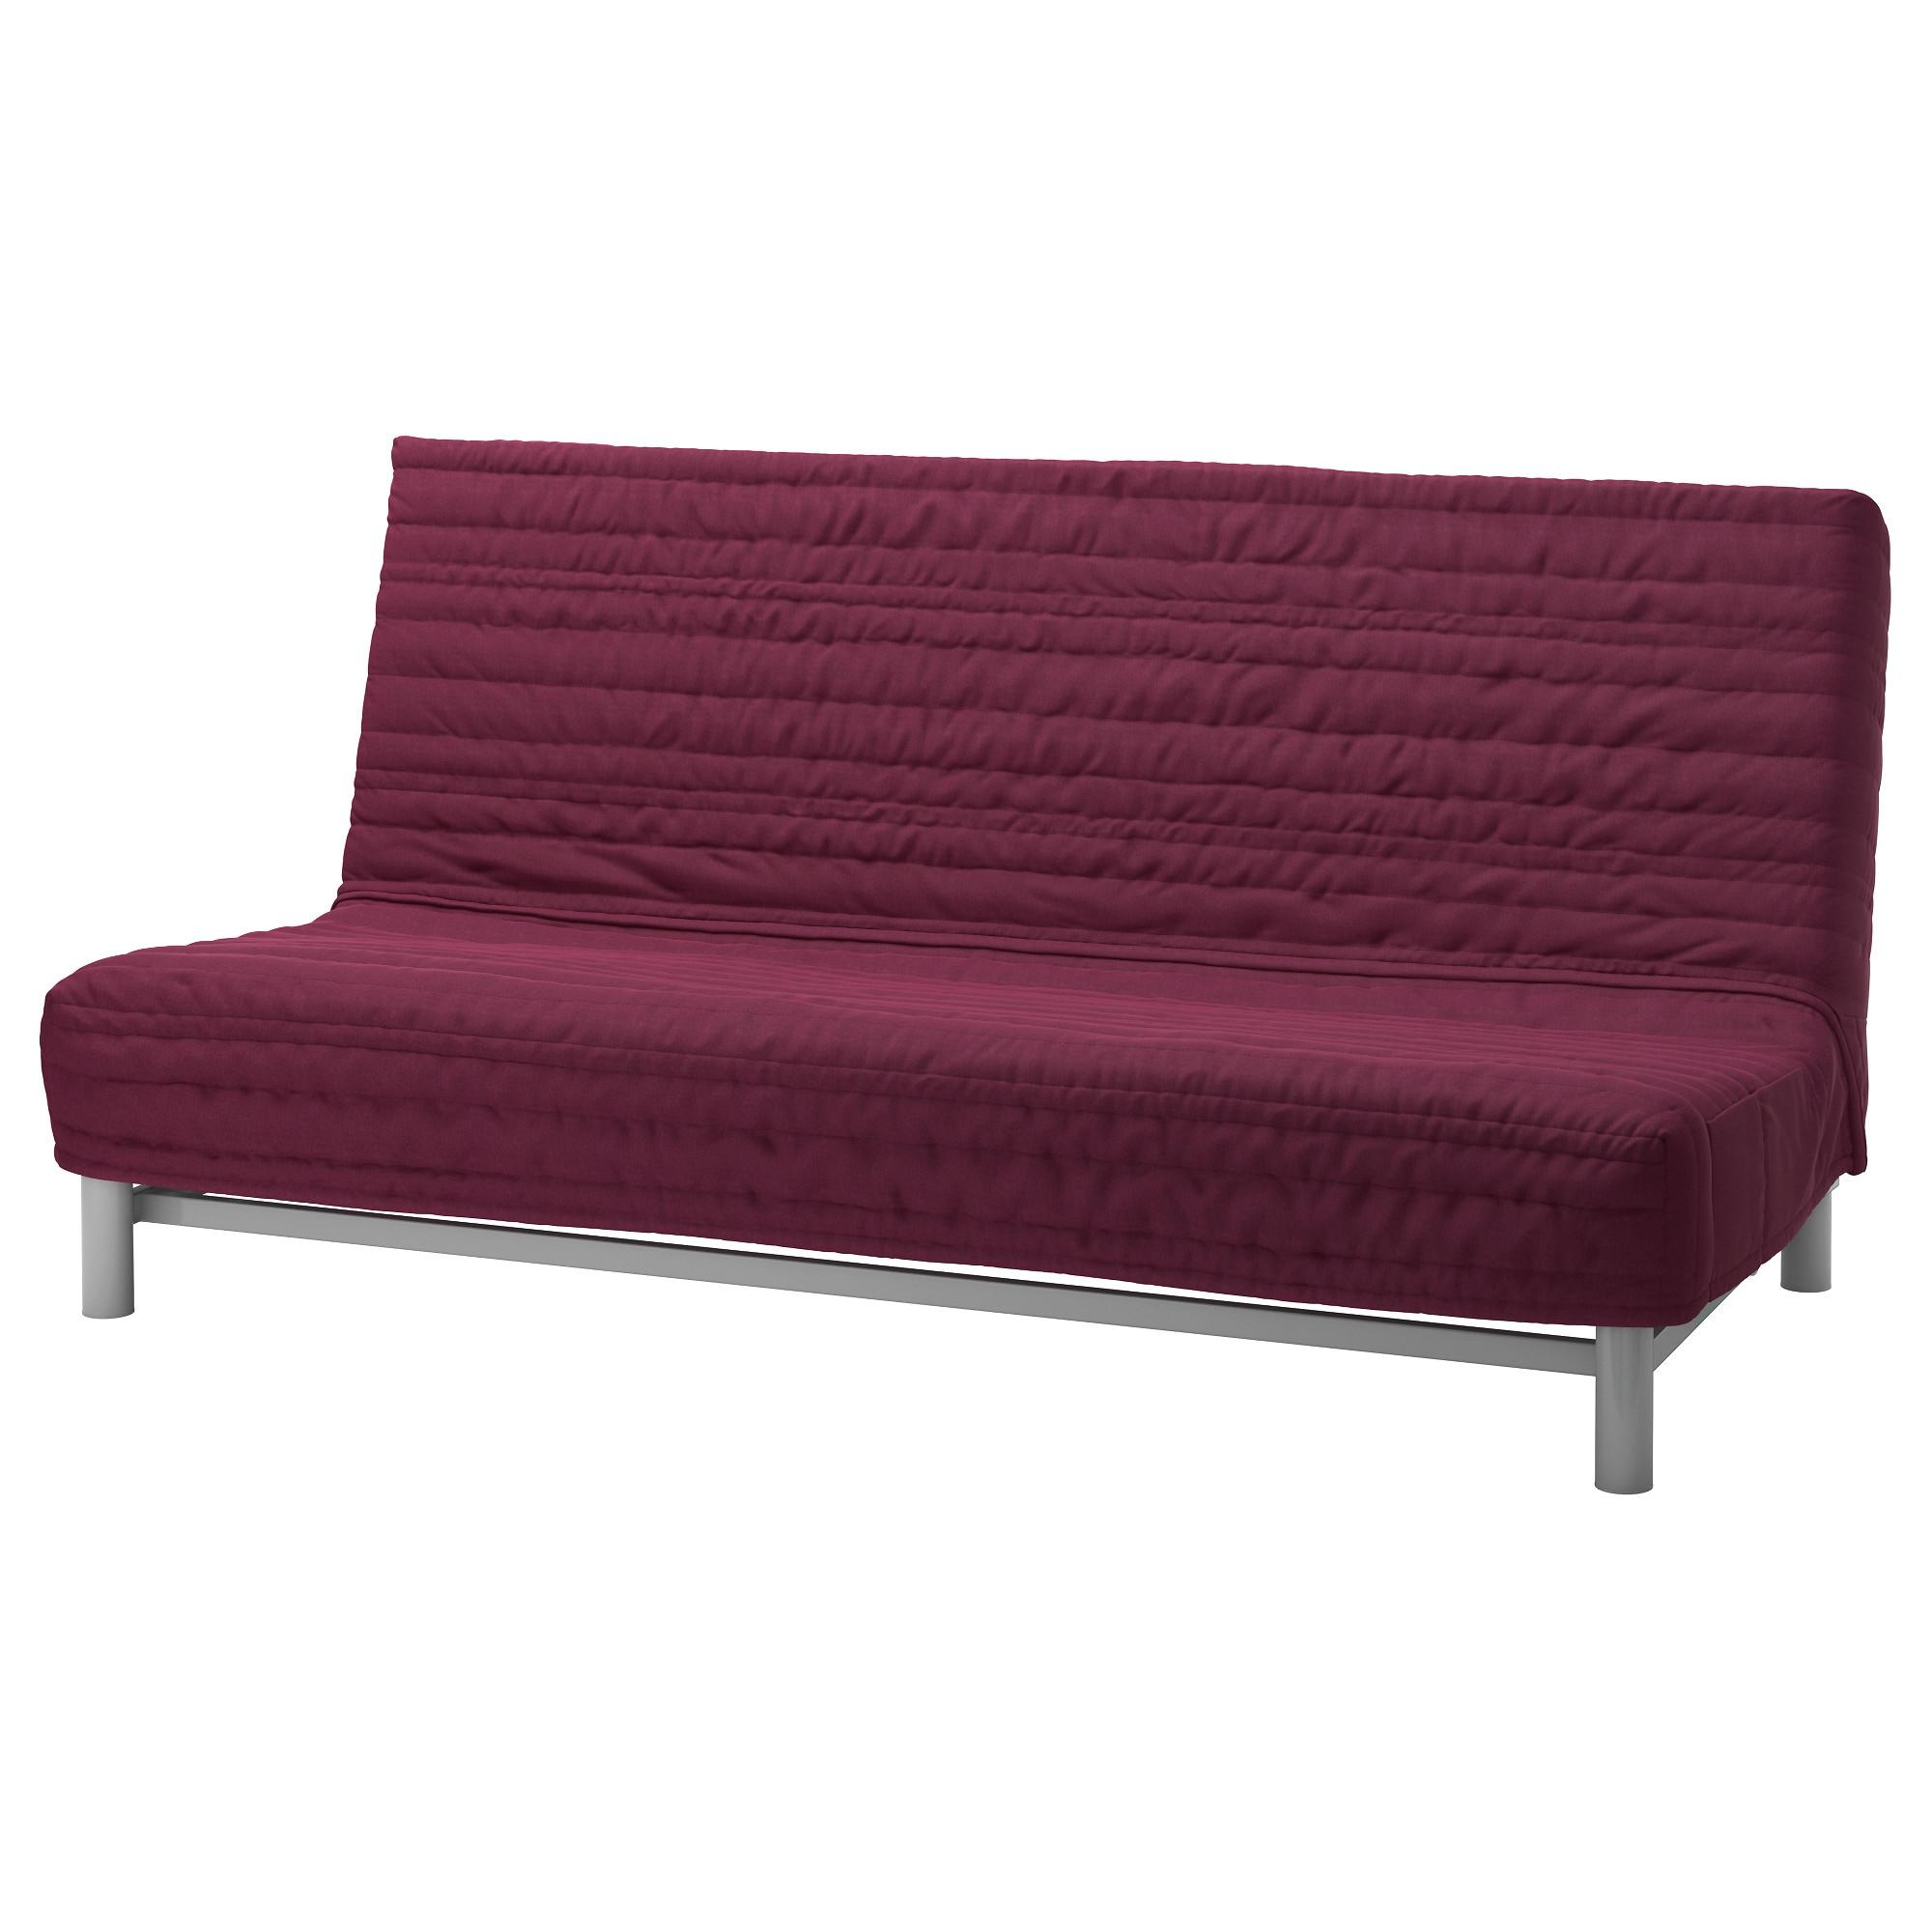 Furniture: Ikea Sofa Beds | Sofa With Pull Out Bed Ikea | Ikea With Cheap Sofa Beds (Image 11 of 20)